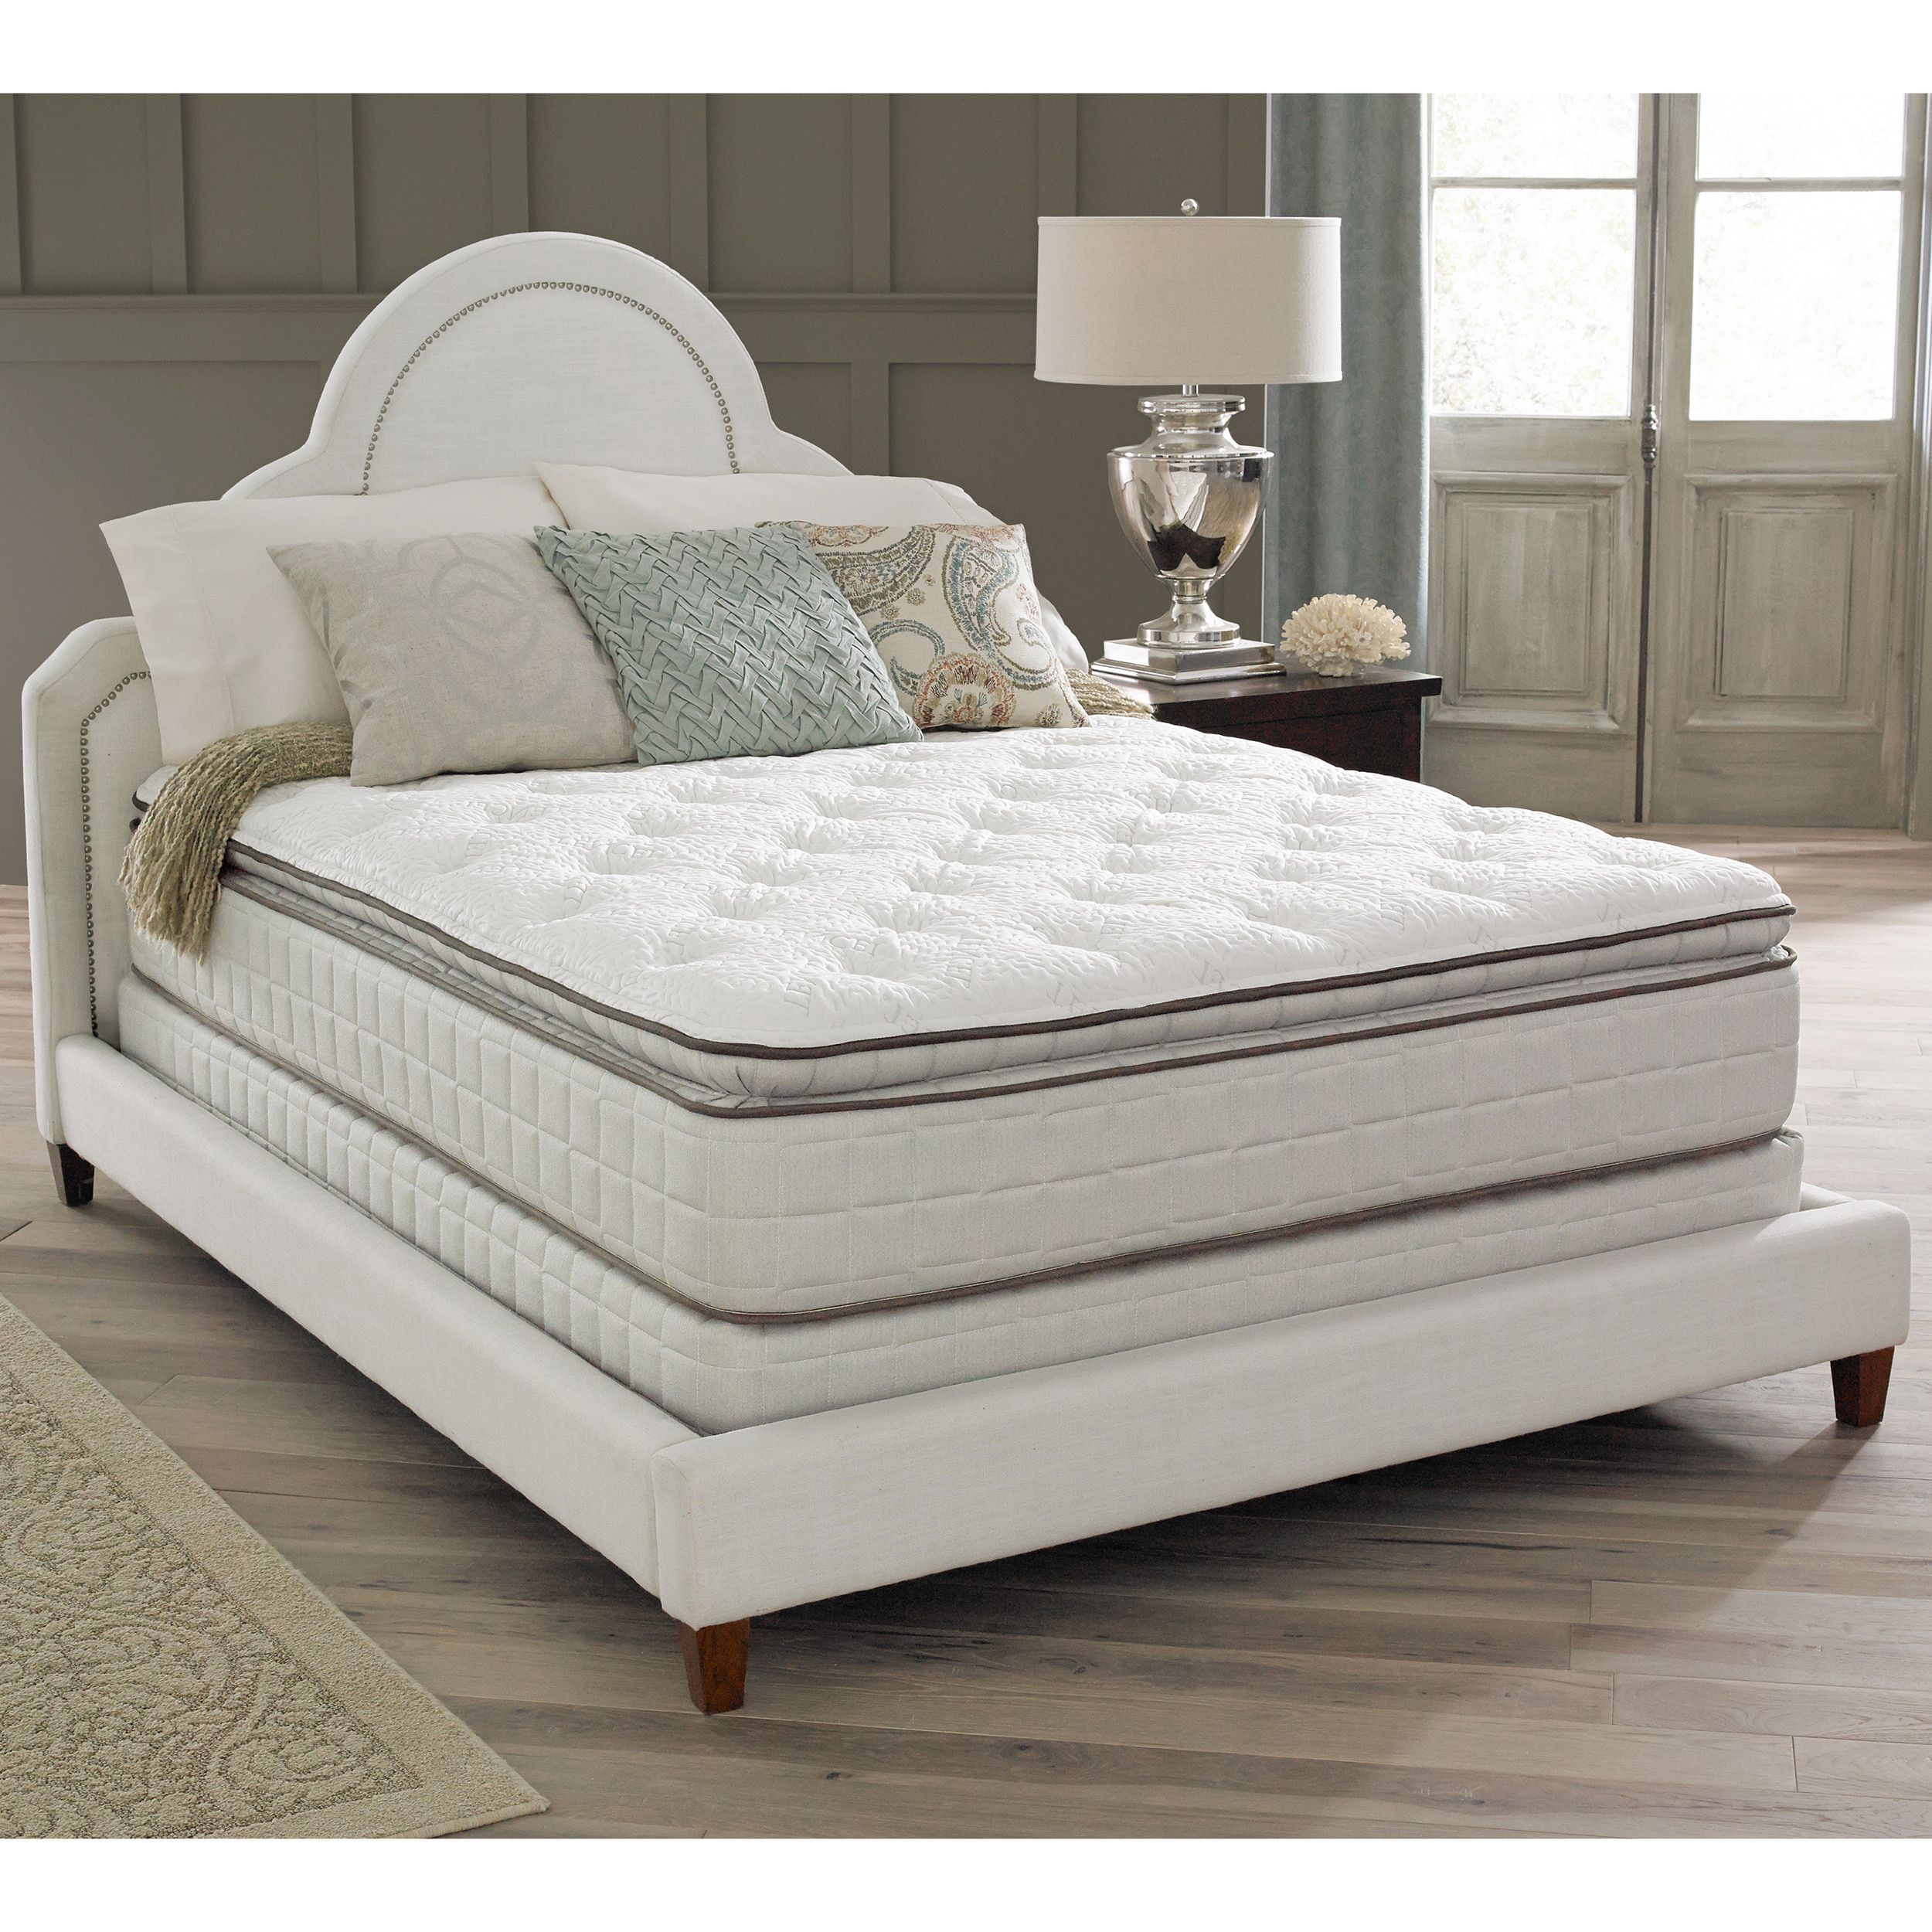 home product mattresses st happy mattress king centers set thomas archives s category